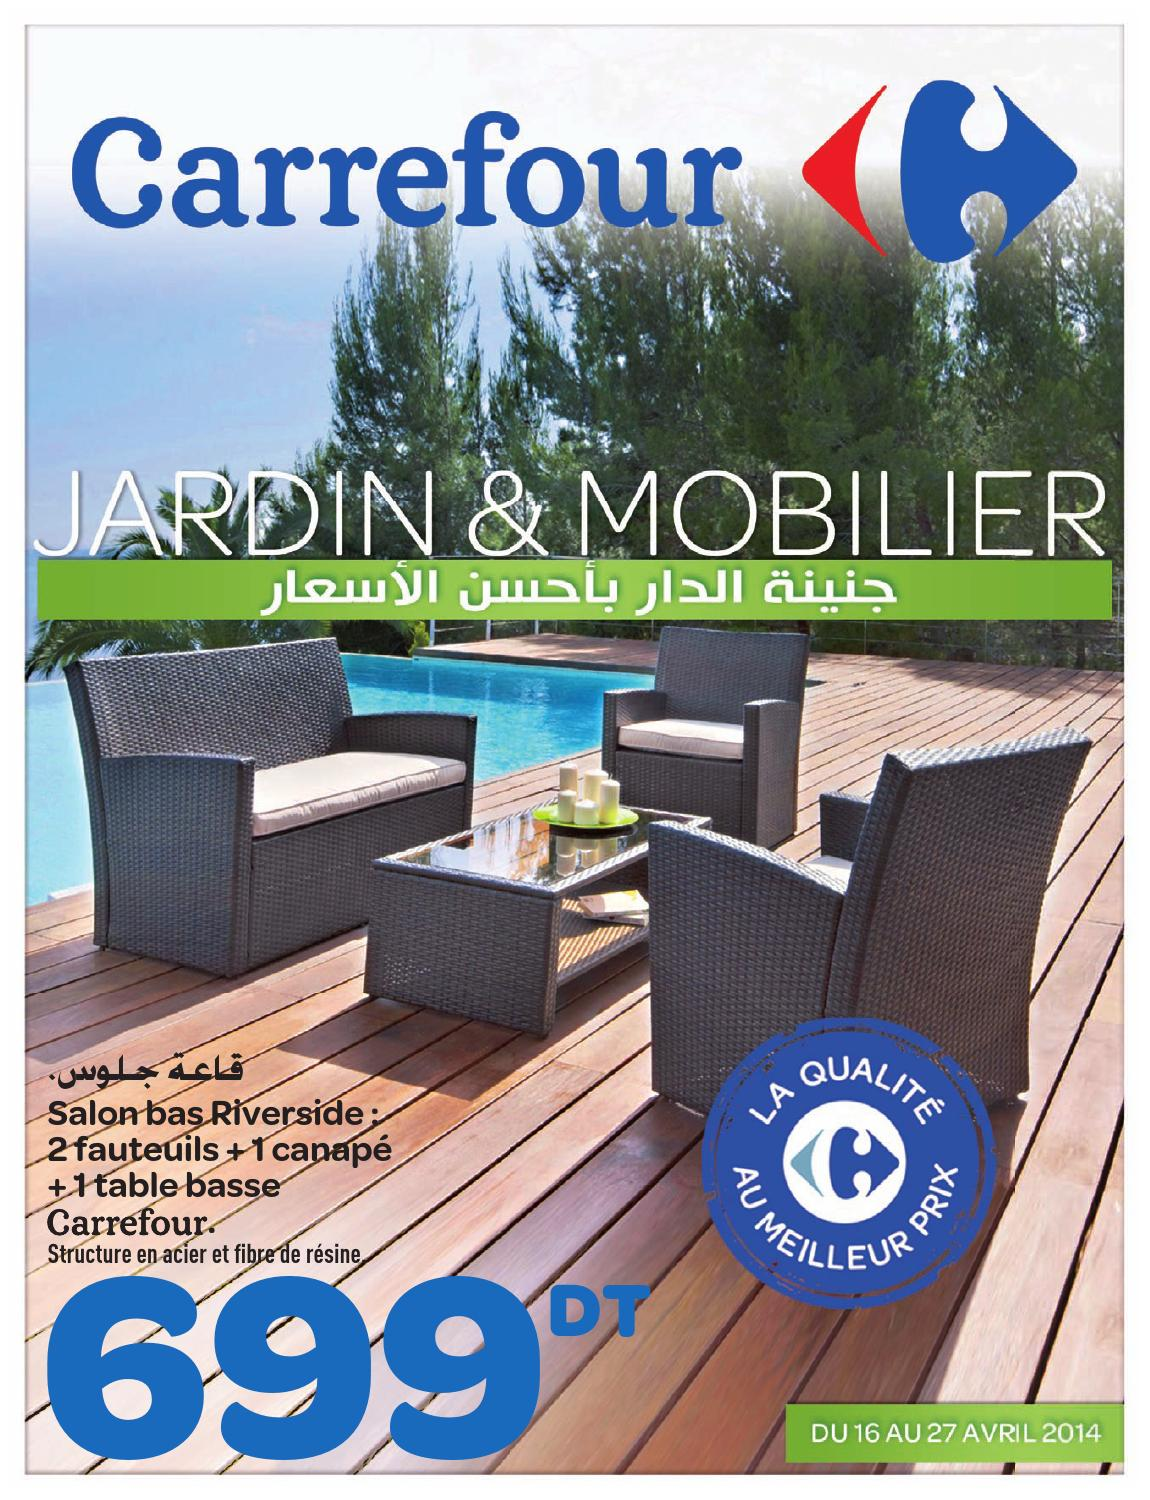 catalogue carrefour jardin et mobilier by carrefour tunisie issuu. Black Bedroom Furniture Sets. Home Design Ideas